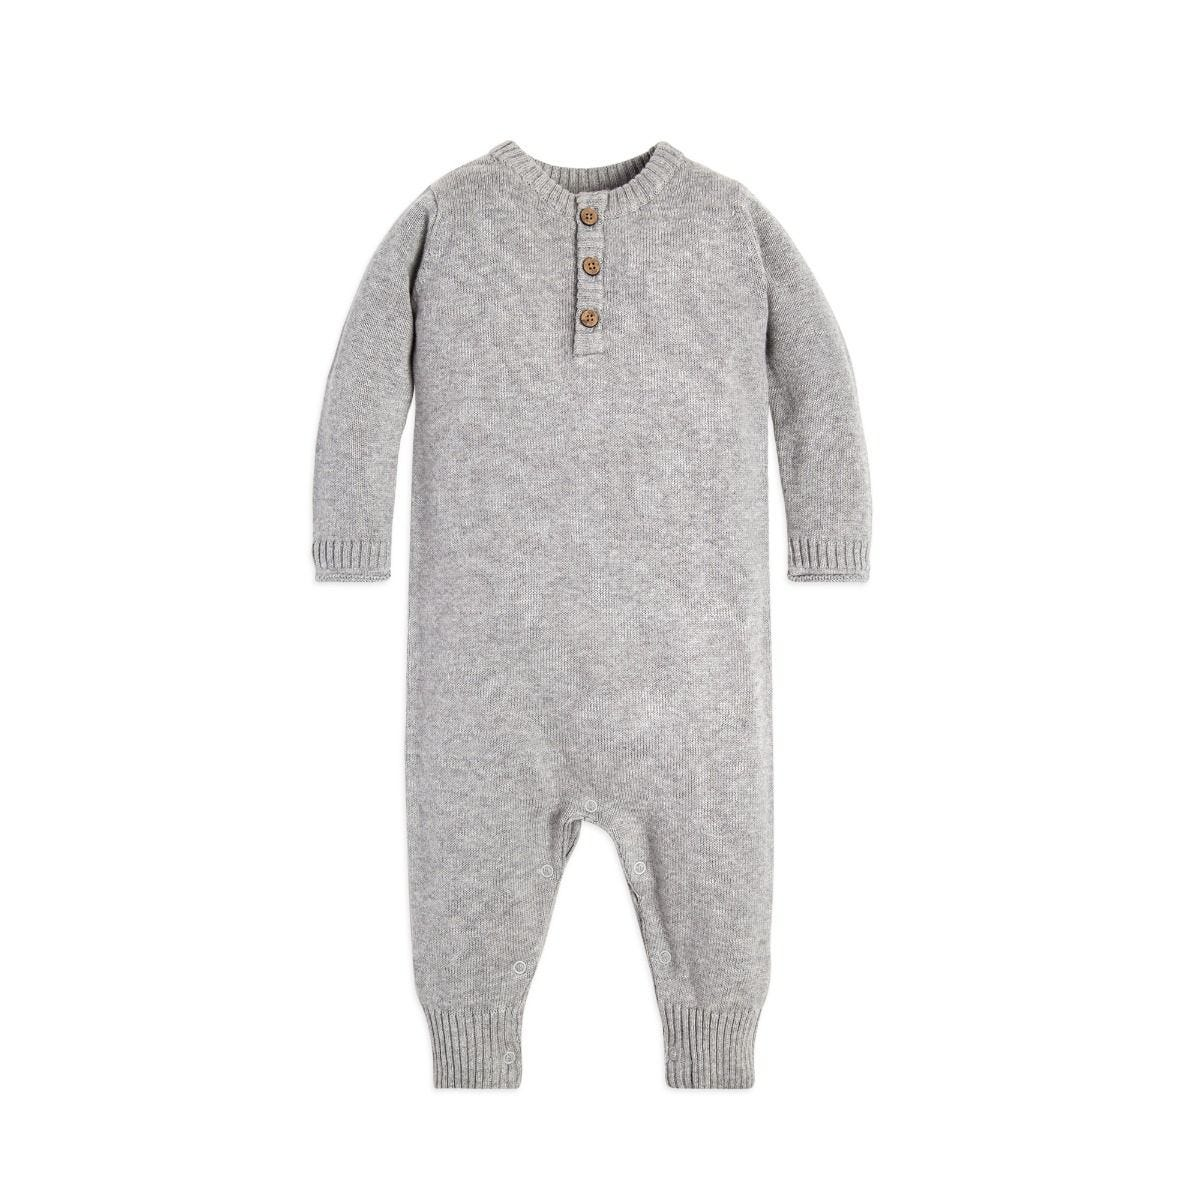 4a7d9adf30ce Baby Organic Sweater Knit Henley One Piece Jumpsuit